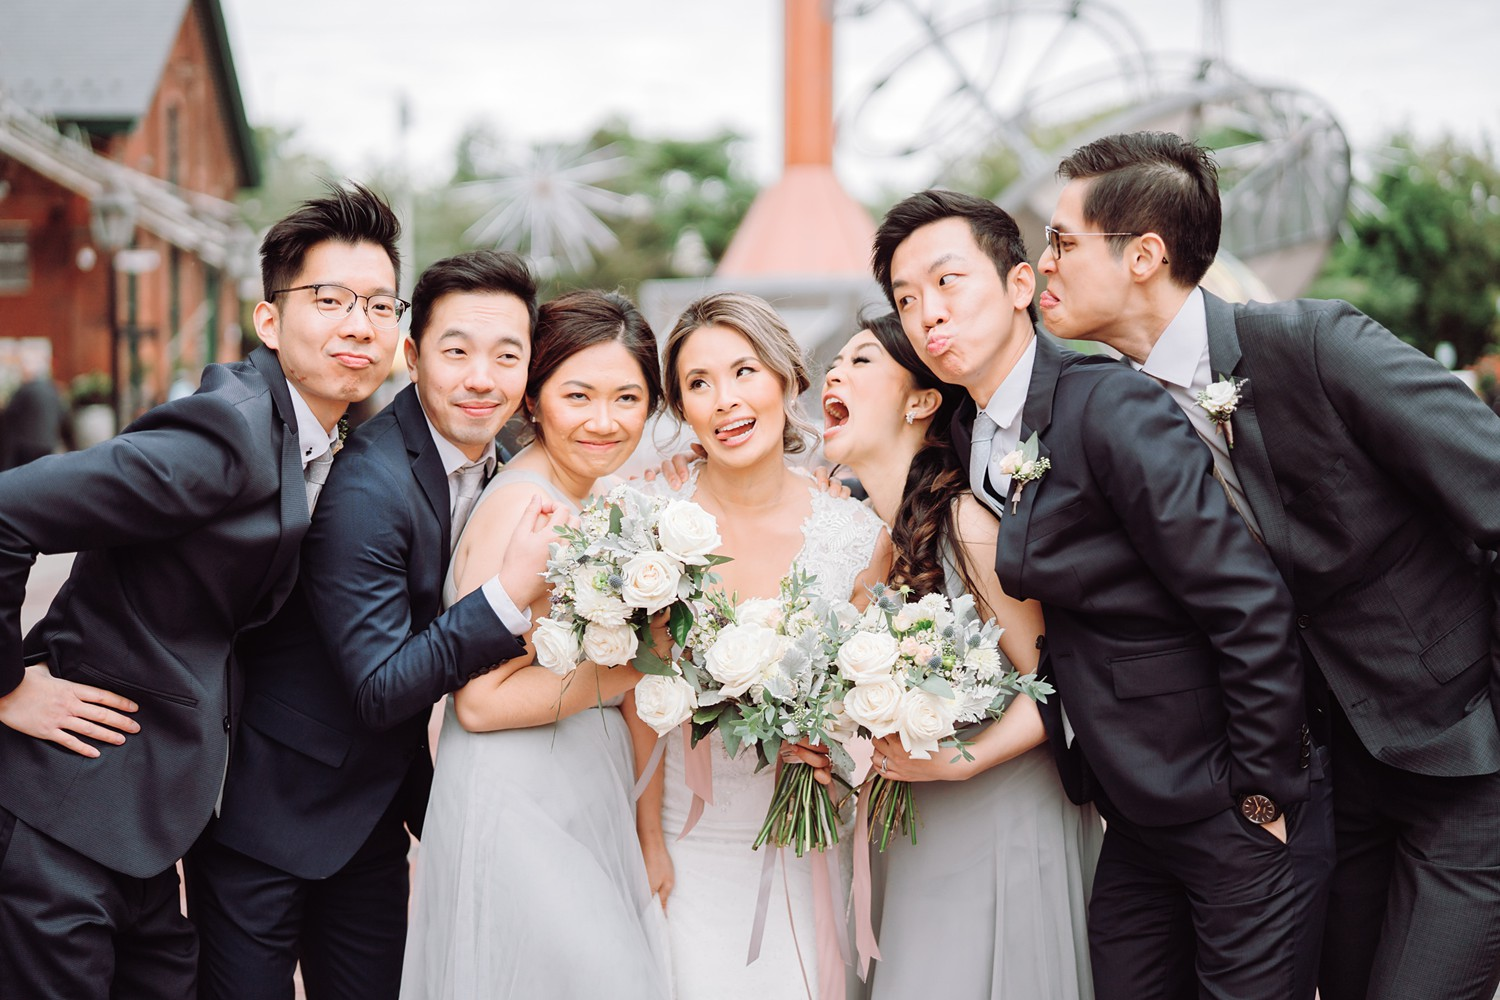 Bridal_Party_Archeo_Distillery_District_Wedding_Photos_Toronto_Destination_Wedding_Photographer-Rhythm_Photography